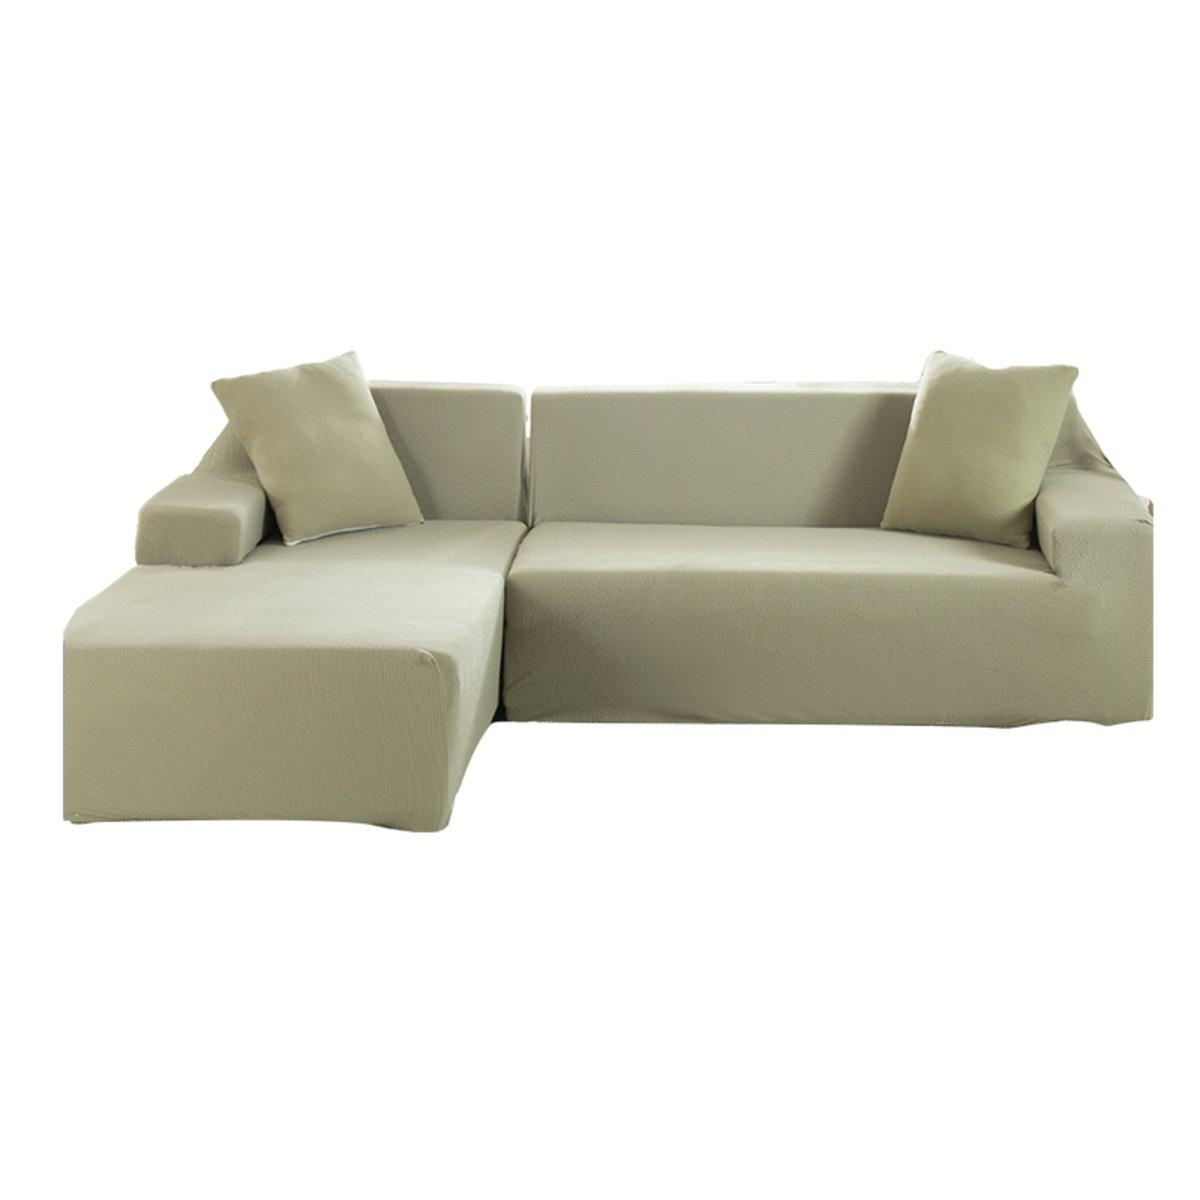 3 Seat L Shape Stretch Elastic Fabric Sofa Covers Elastic Sectional Corner Couch Slipcovers